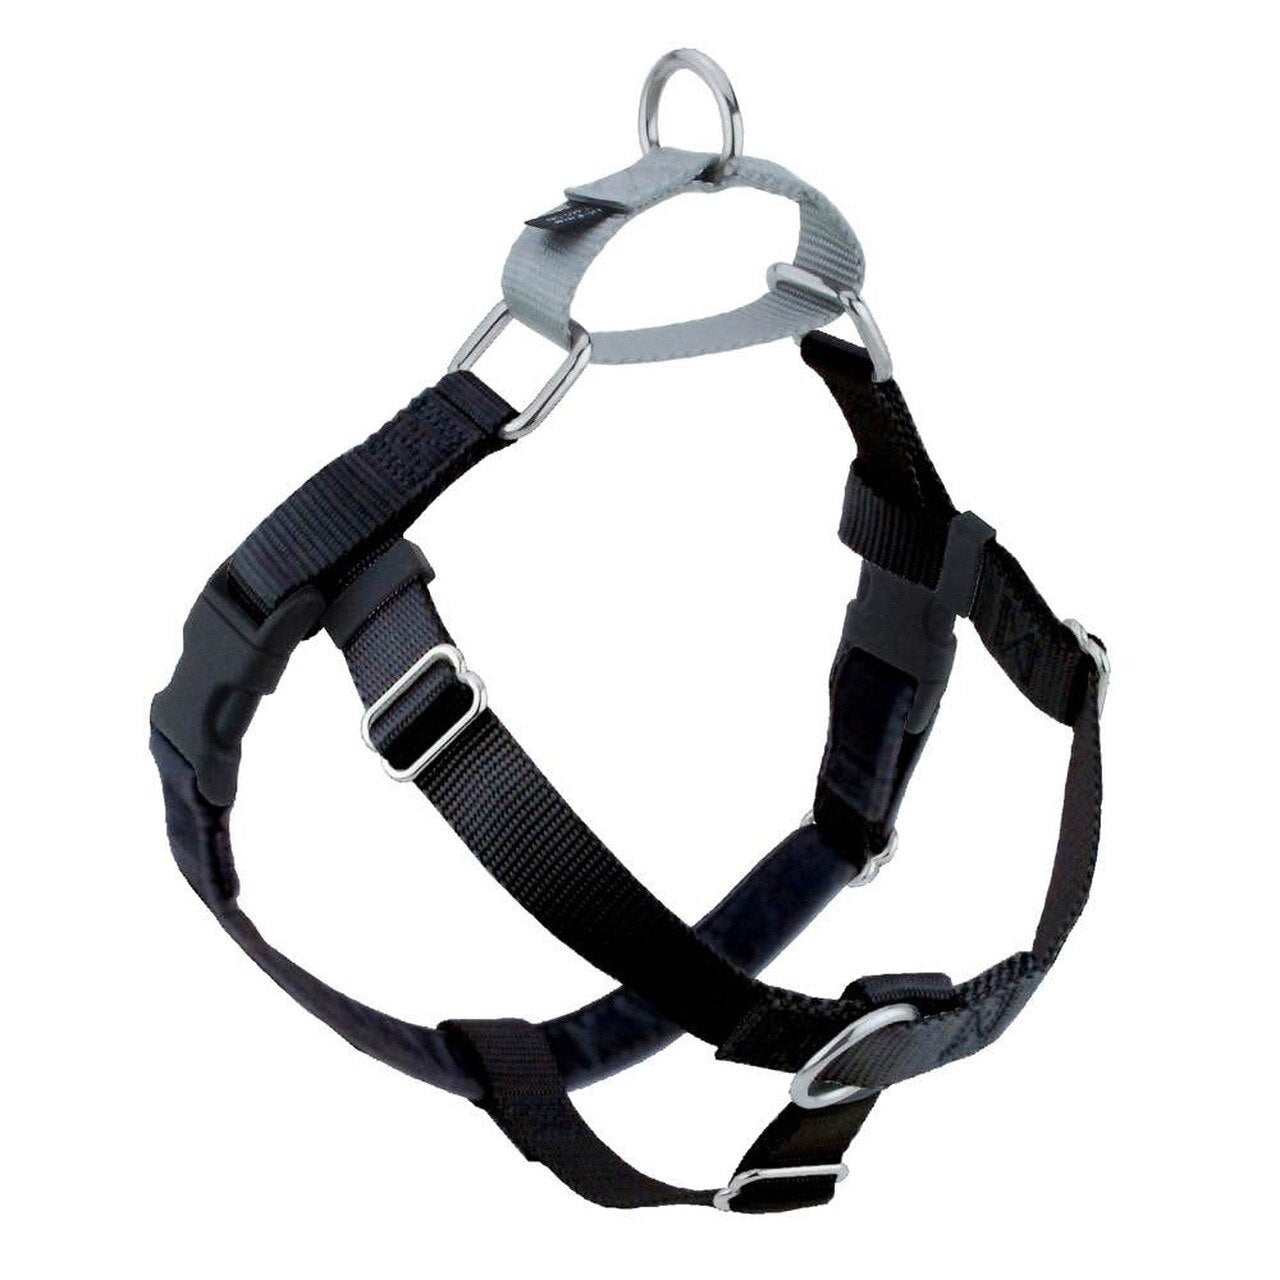 "2 Hounds Design Freedom No-Pull Dog Harness and Leash - Large 1"" - Black - For Southeastern Guide Dogs"